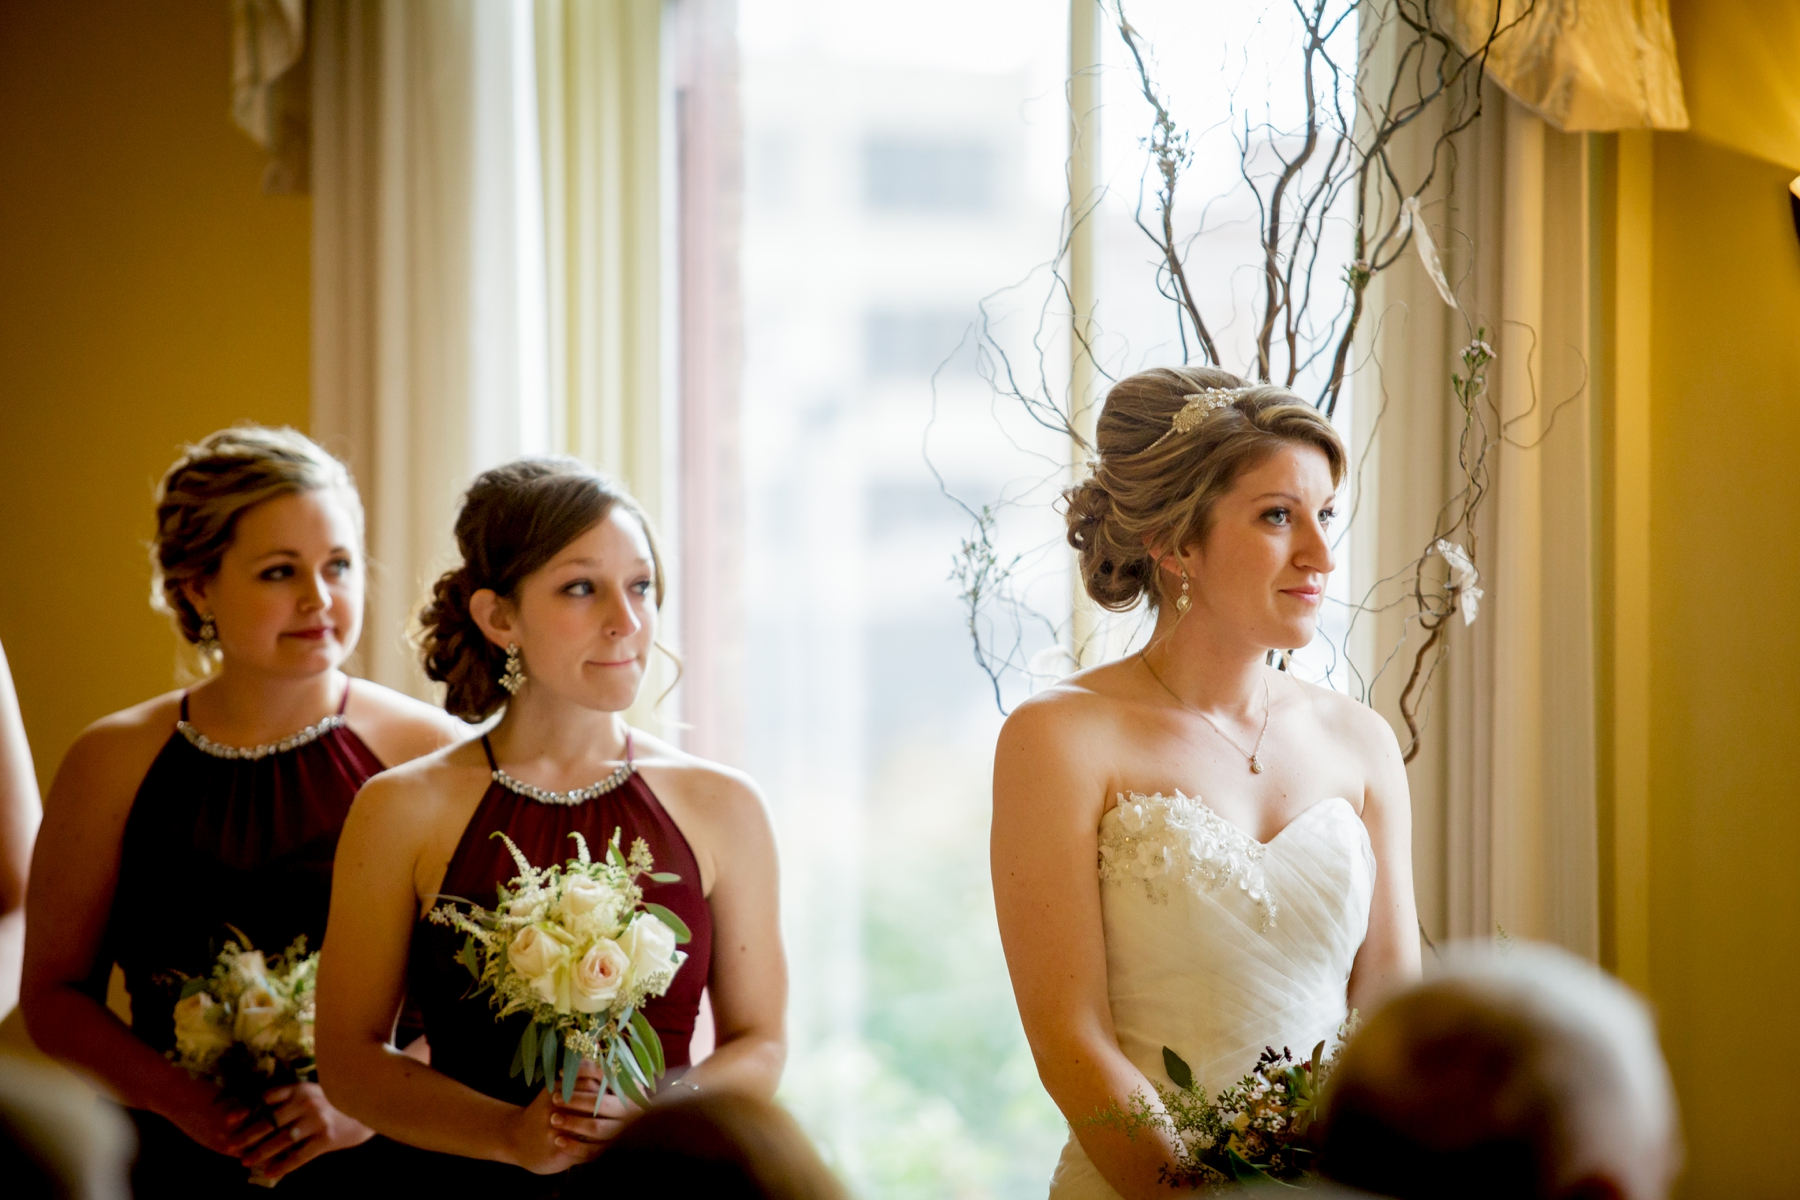 Brandon_Shafer_Photography_Kristen_Corey_Downtown_Grand_Rapids_Fall_Wedding0029.JPG